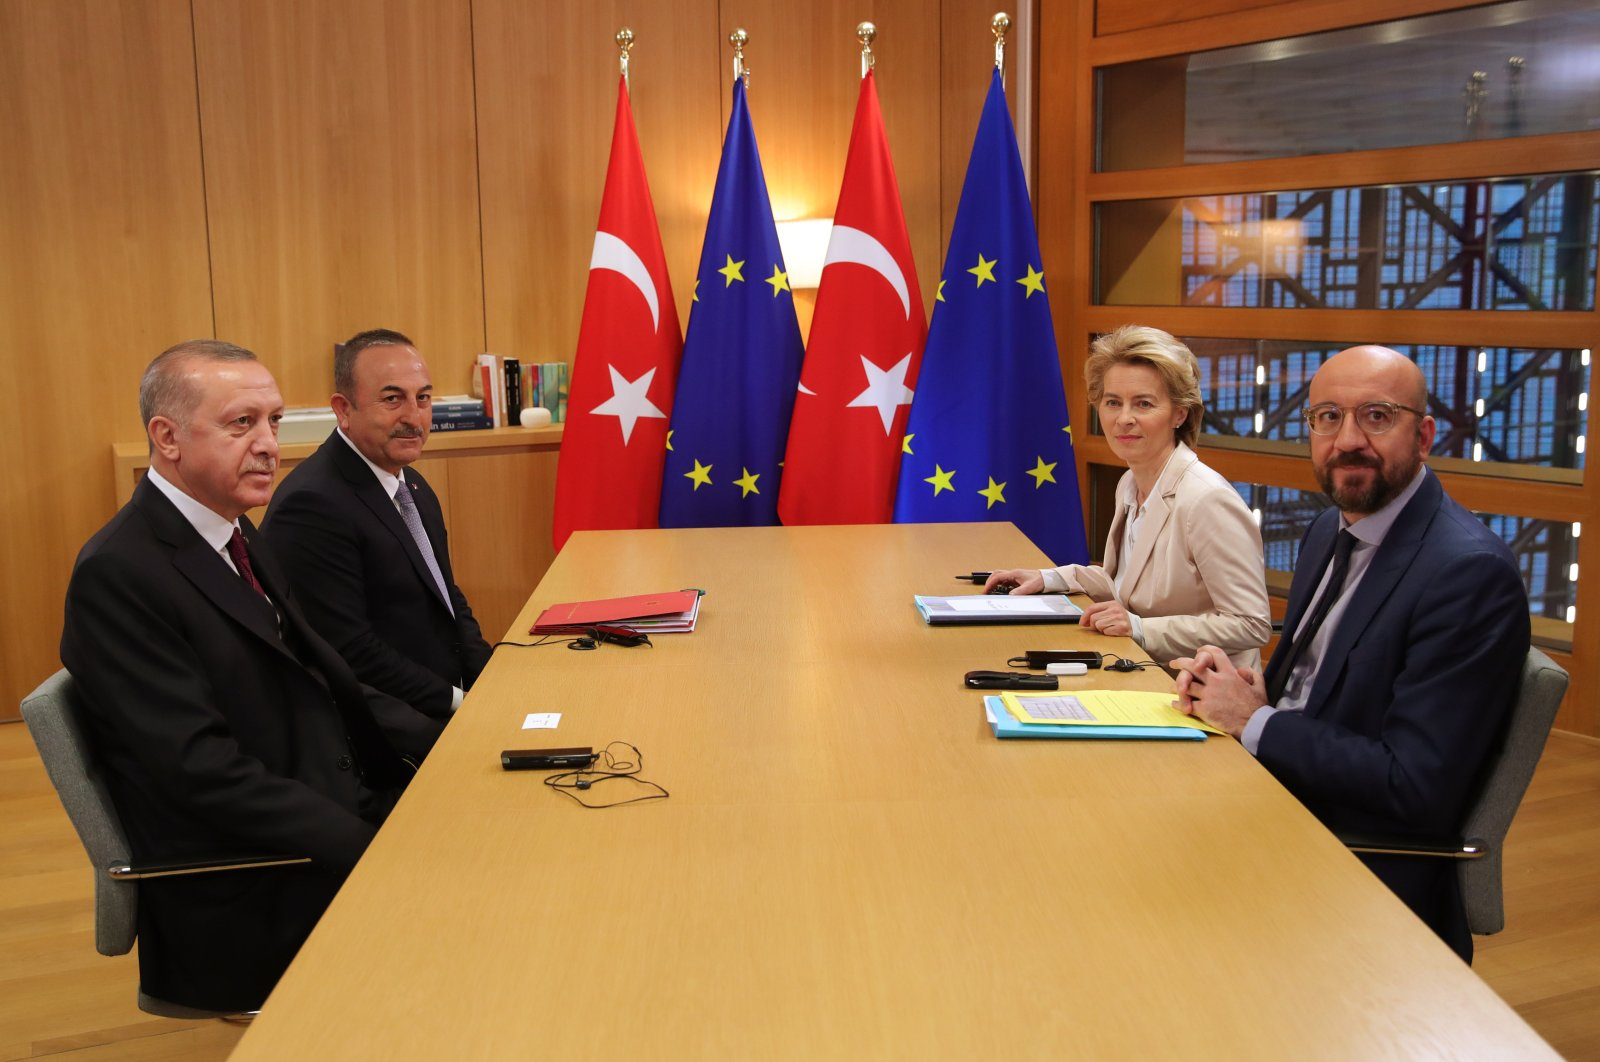 President Recep Tayyip Erdoğan (left) and Foreign Minister Mevlüt Çavuşoğlu (second left) at a meeting with Ursula von der Leyen (second right) and Charles Michel, President of European Council (right), Monday, March 9, 2020. (AA Photo)